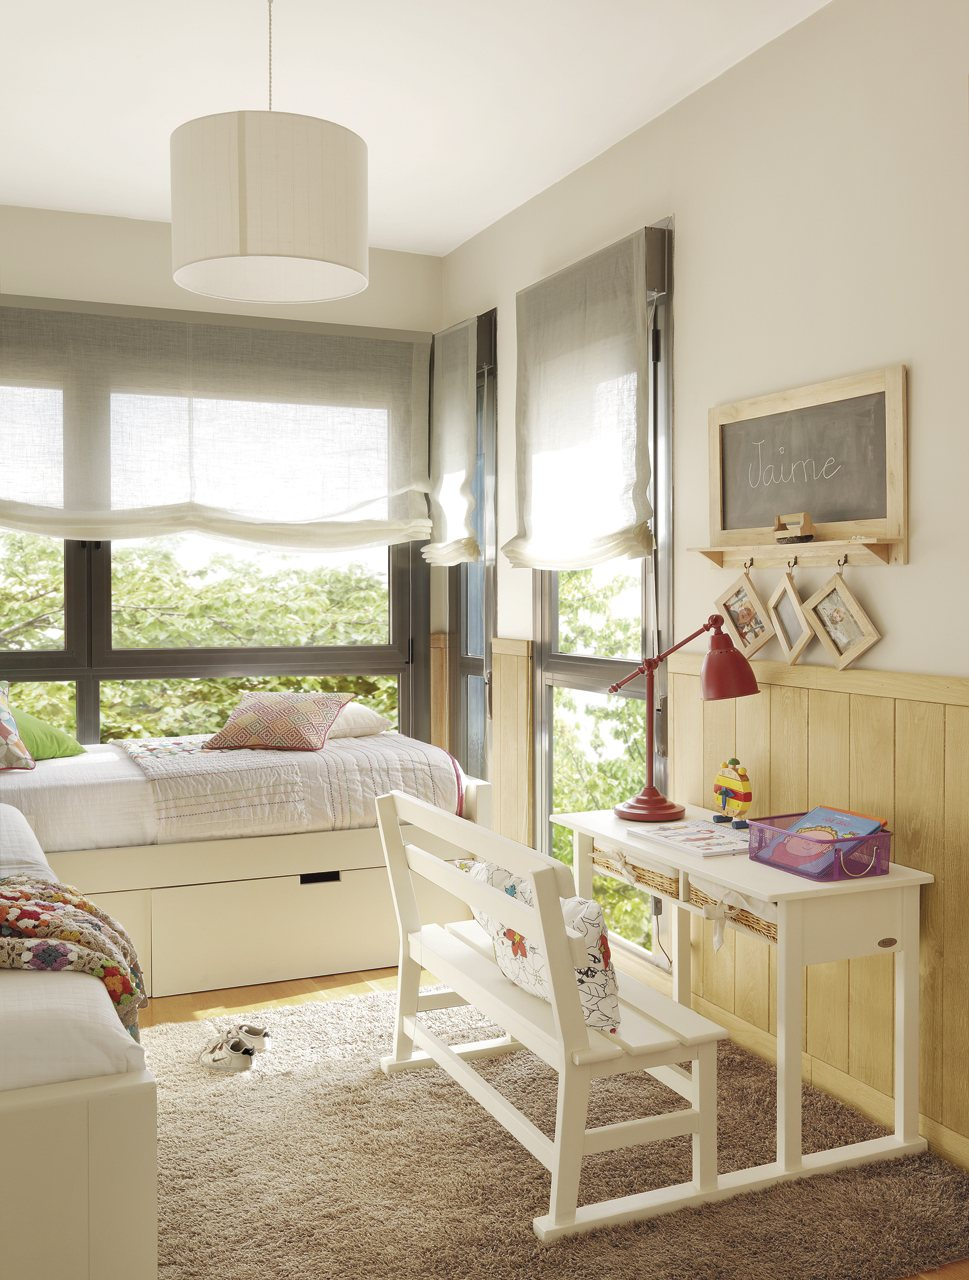 Ideas creativas para decorar un cuarto infantil - Decorar habitacion nino ...